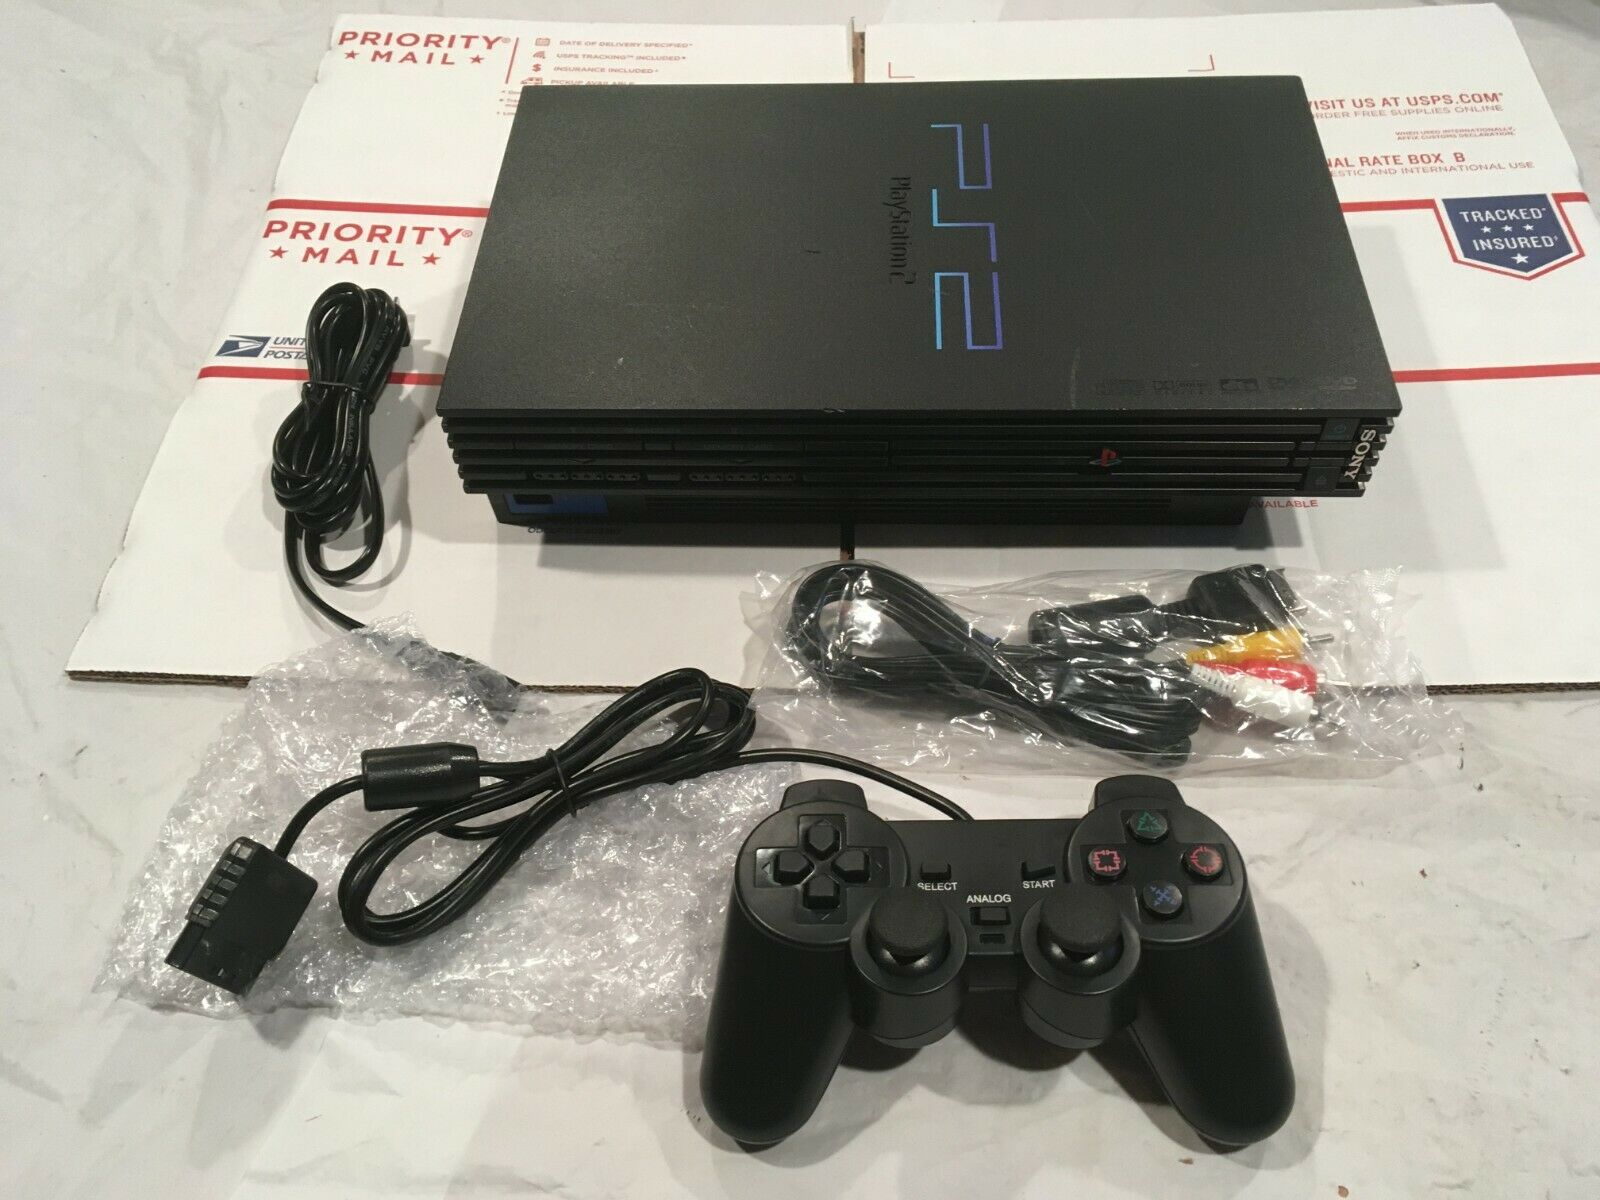 SONY PS2 Console Playstation 2 Complete Video Game System WORKING Ready to Play